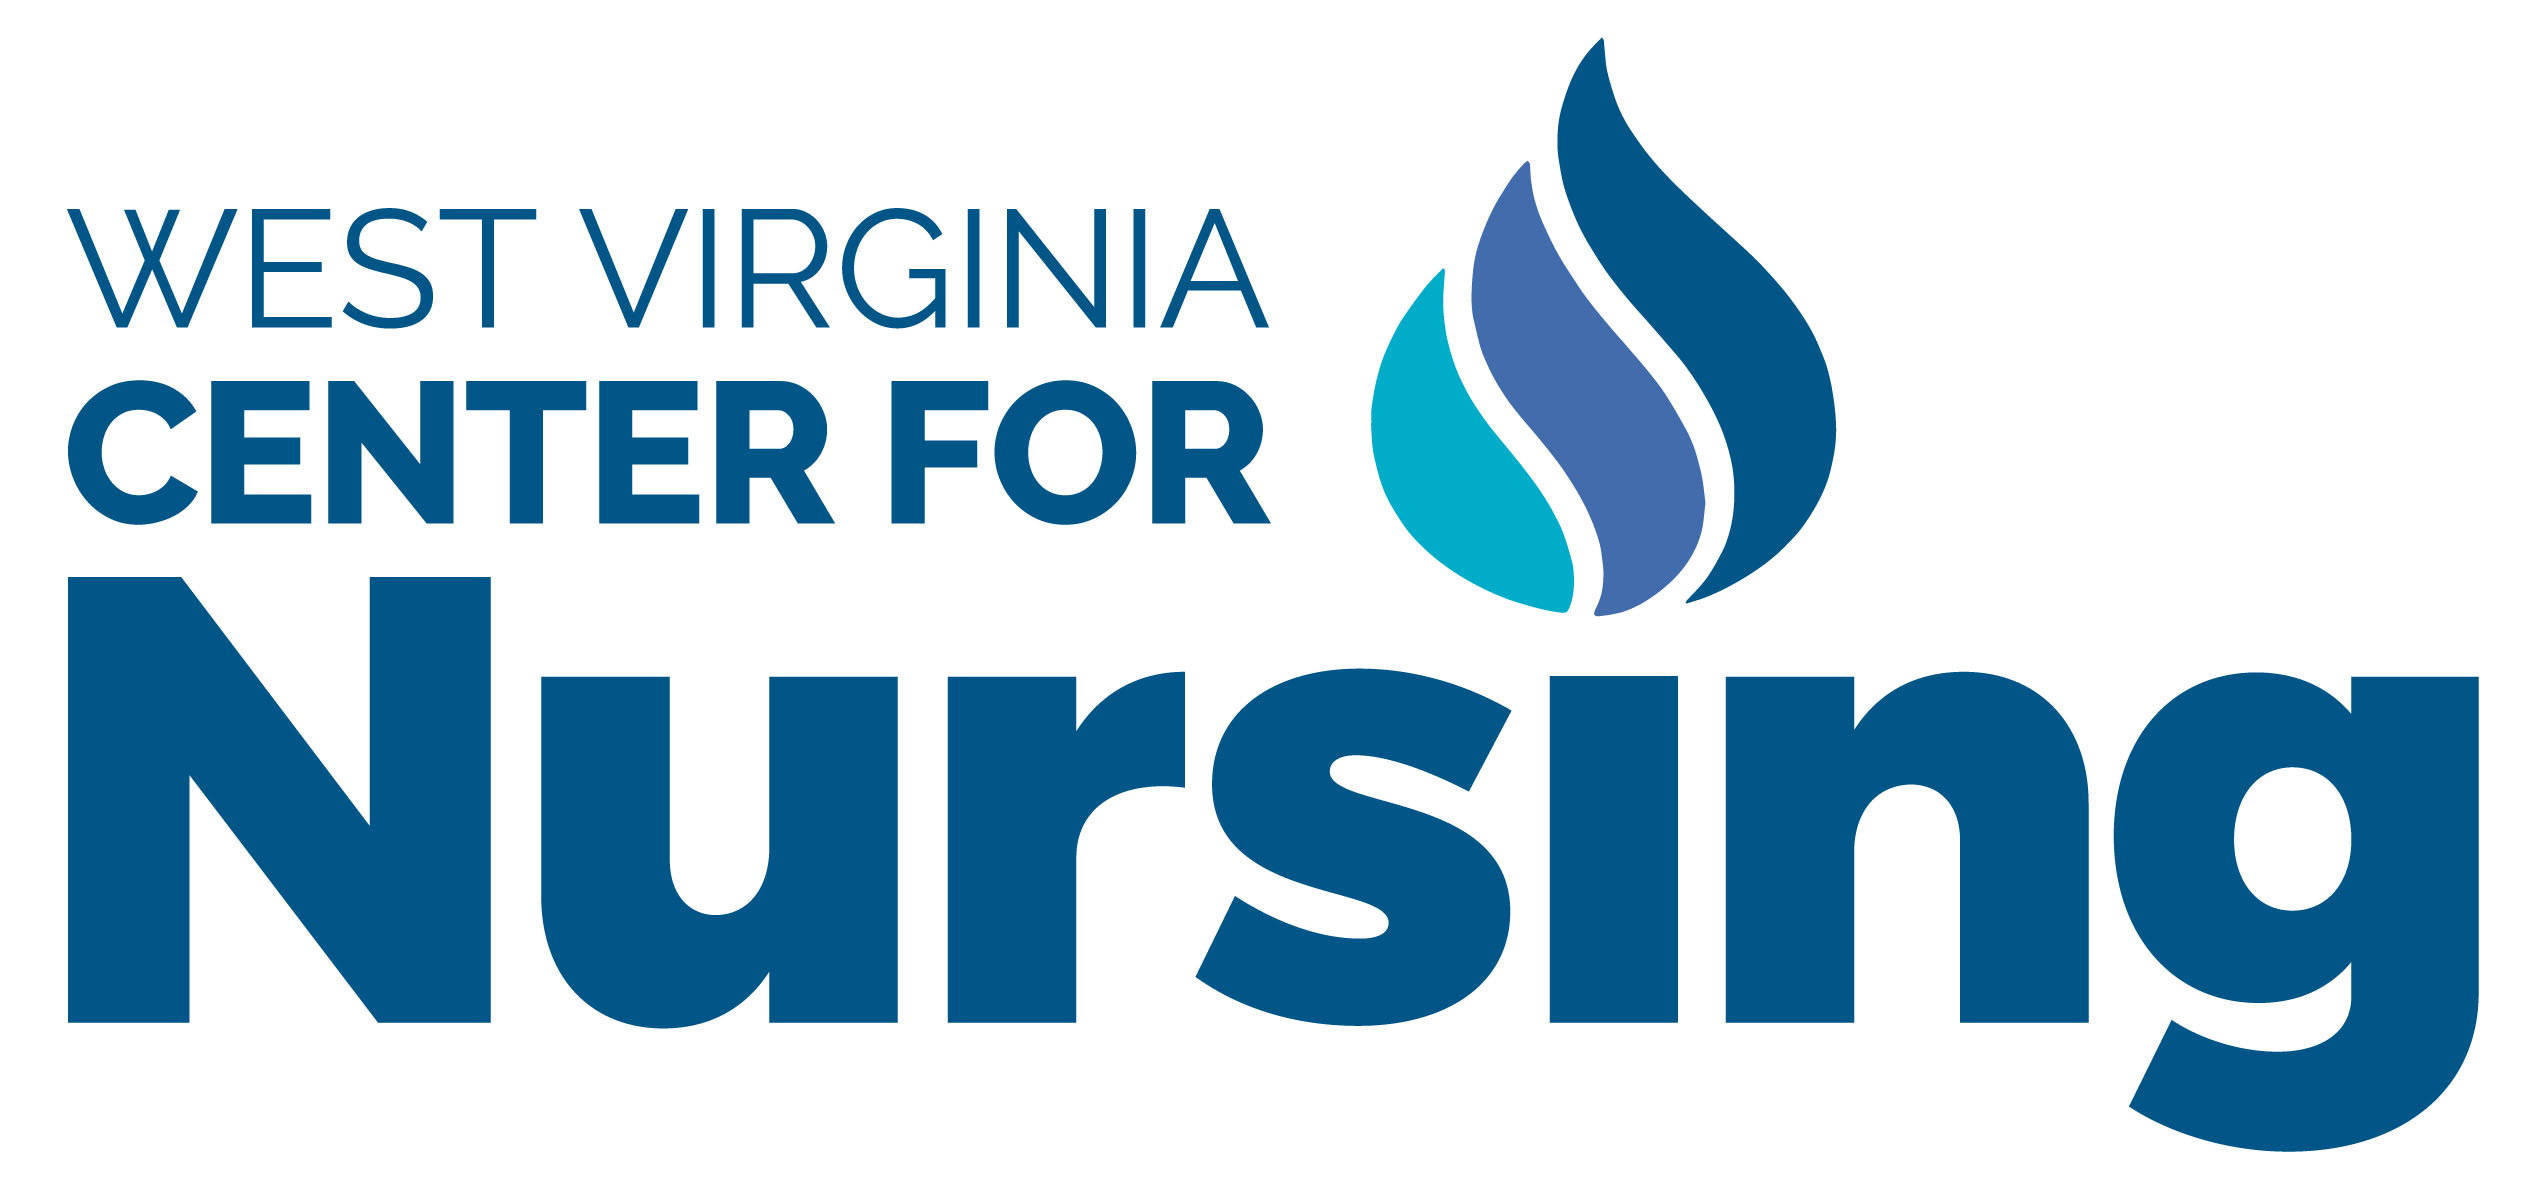 WV_CENTER_FOR_NURSING